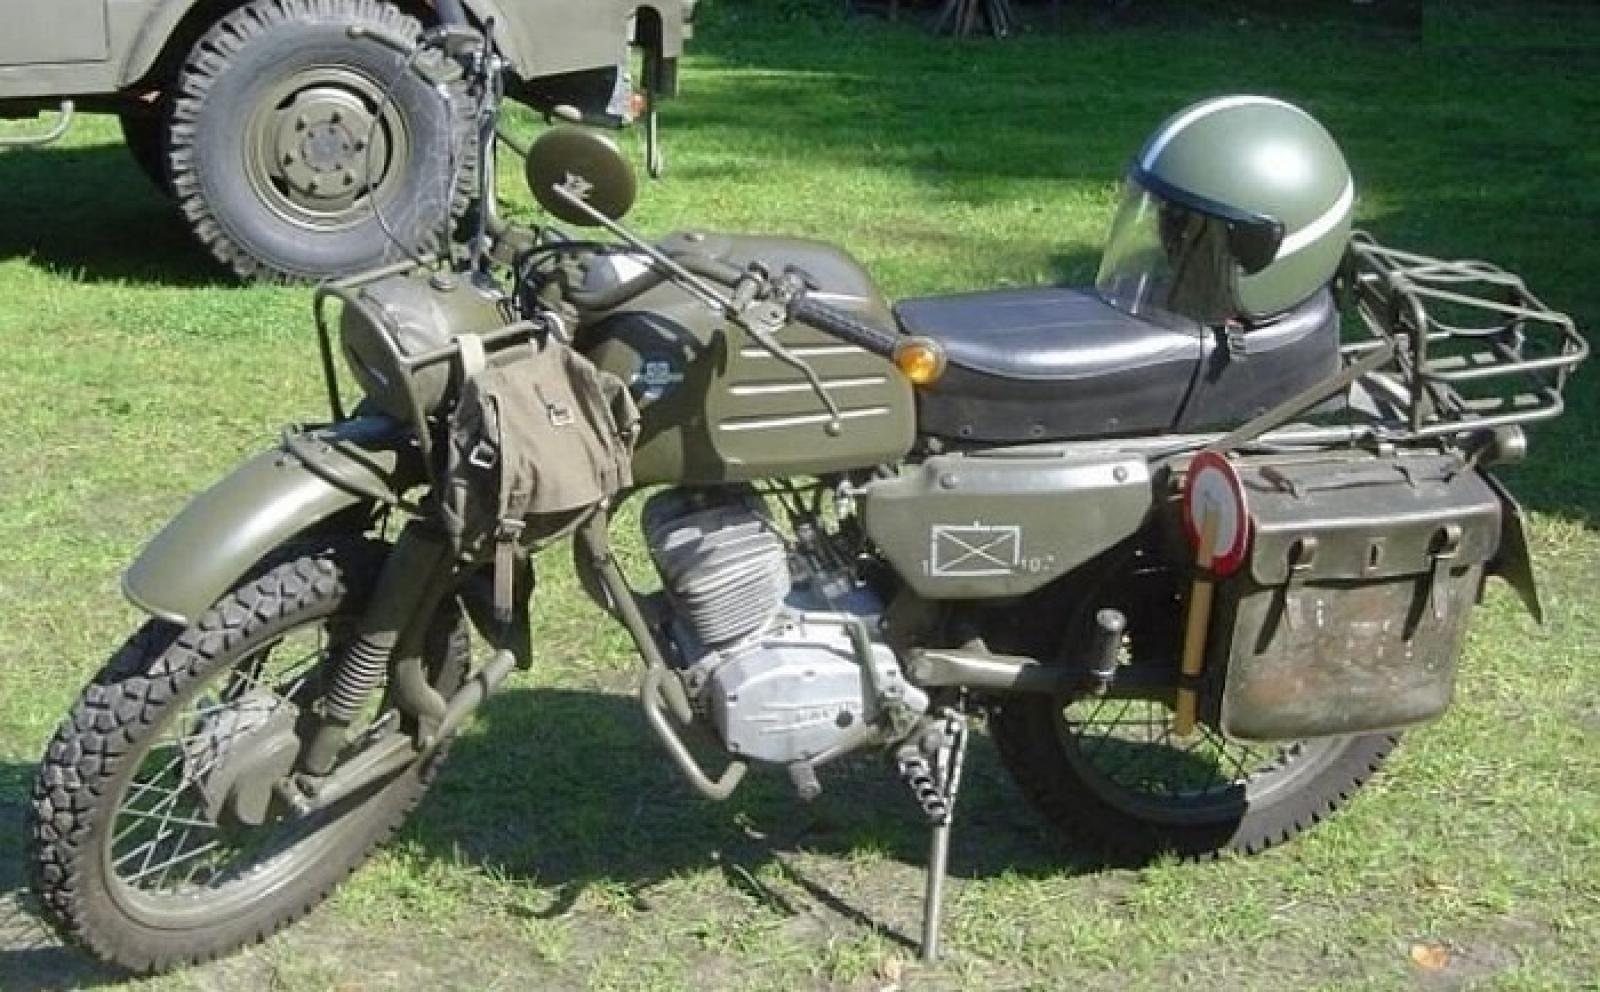 Hercules K 125 Military 1989 images #74674